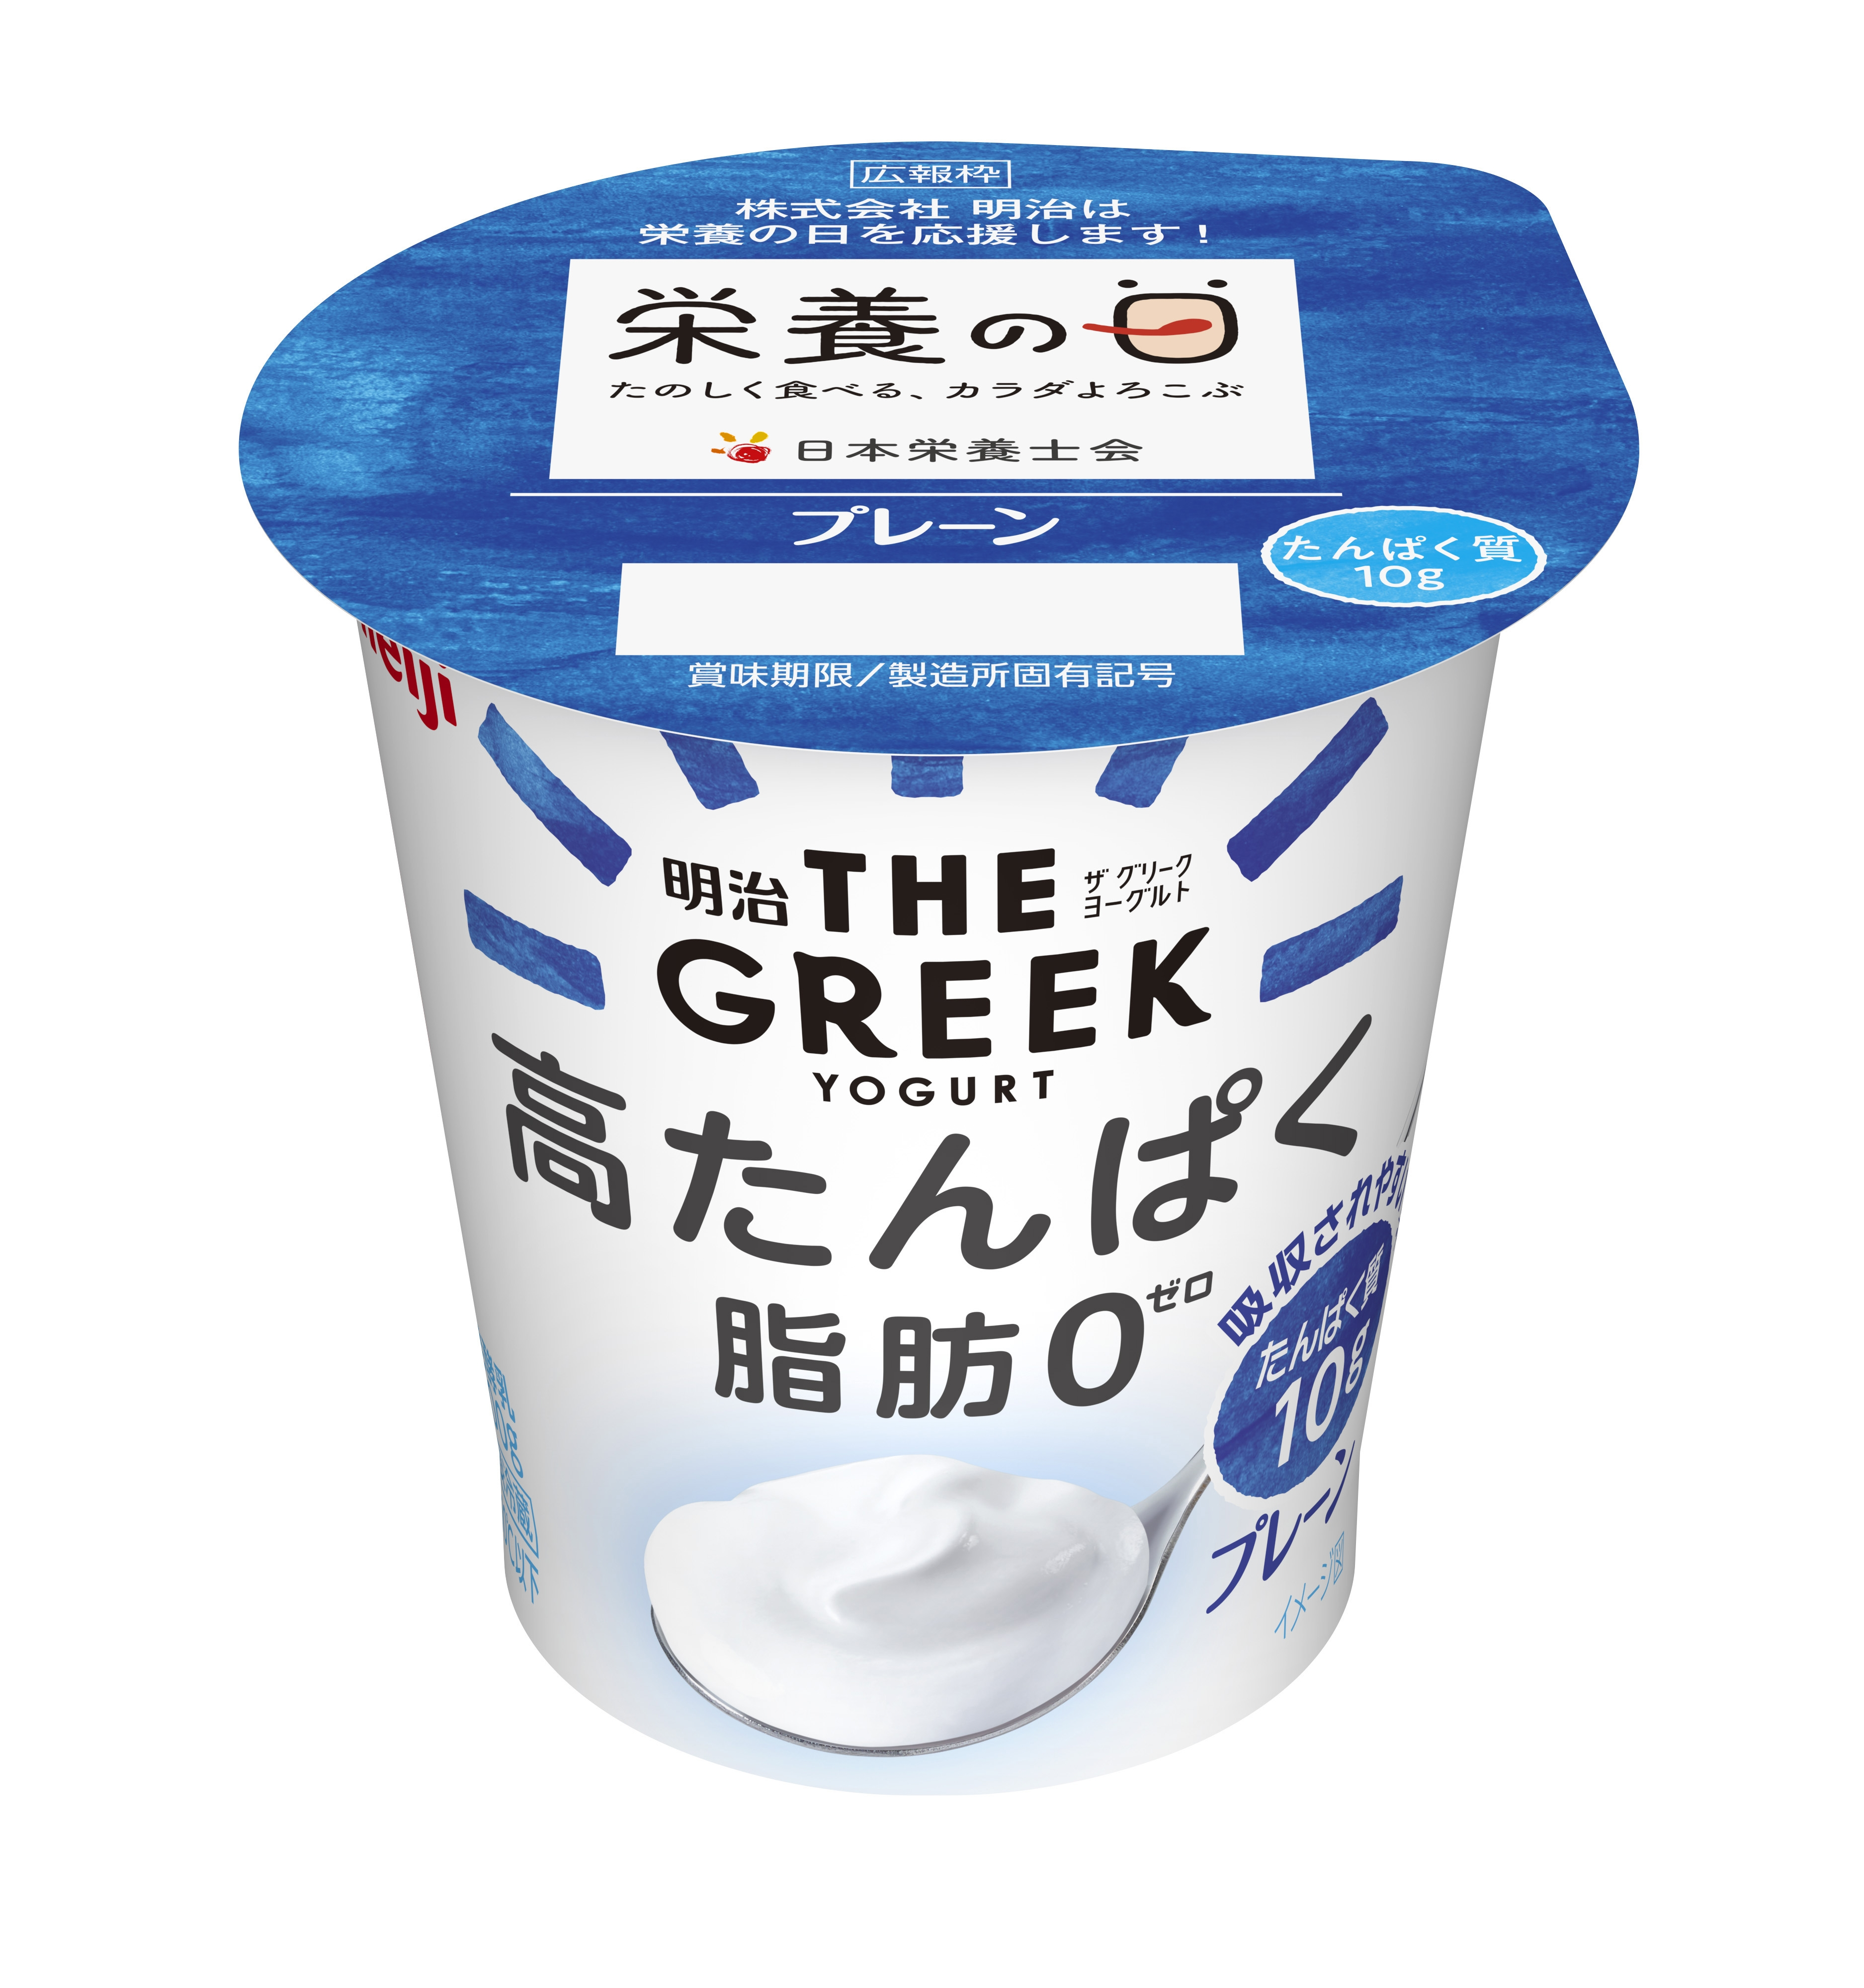 THE GREEK YOGURT プレーン.jpg